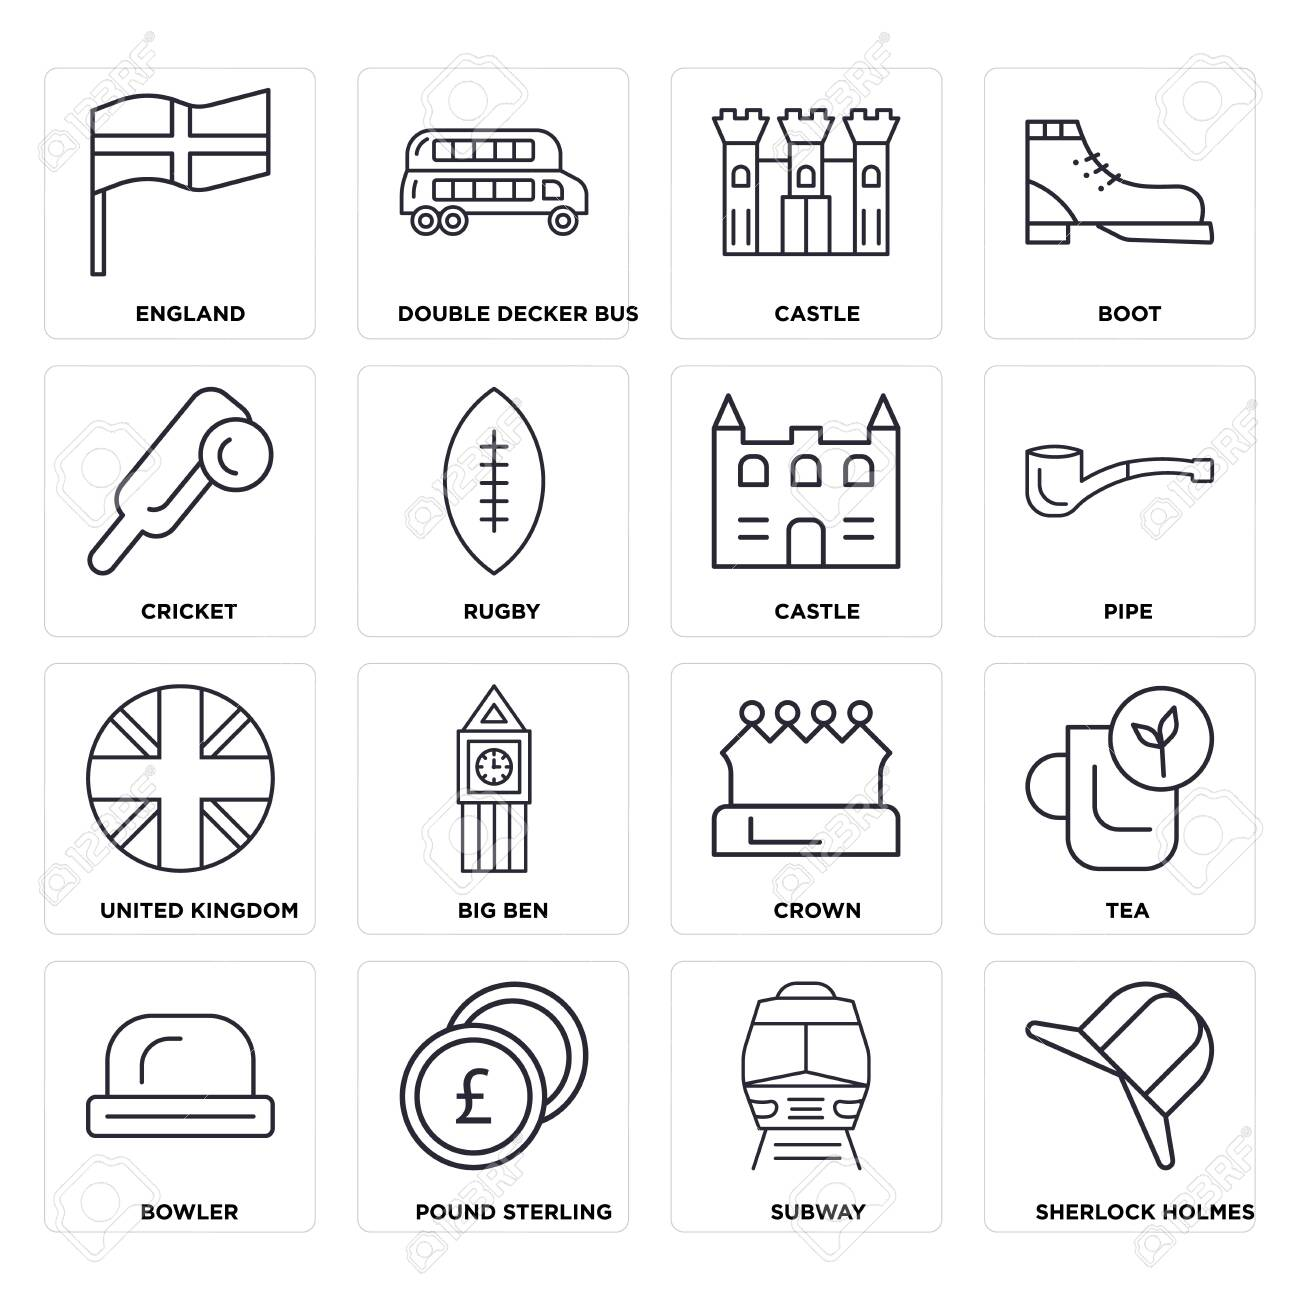 Set Of 16 icons such as Subway, Pound sterling, Bowler, Tea, England, Cricket, United kingdom, Castle, web UI editable icon pack, pixel perfect - 130332541